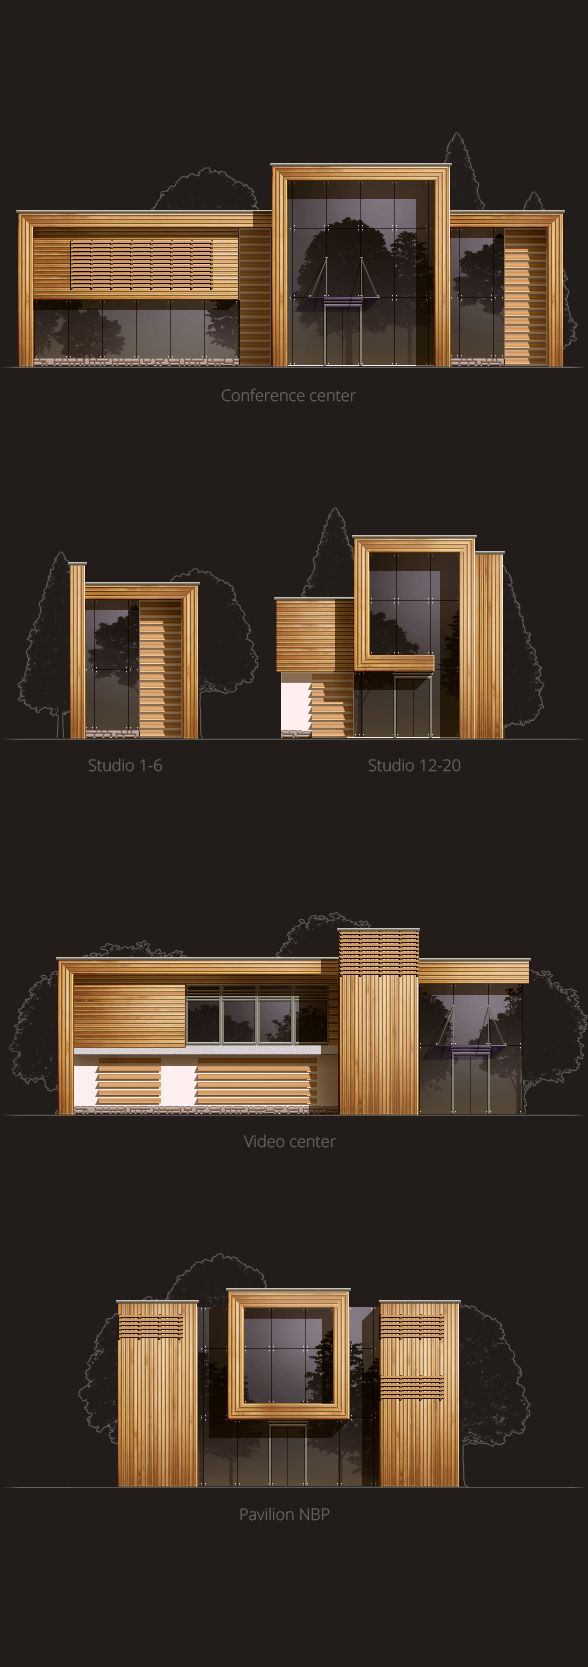 Super simple way to present elevations that looks good in a presentation